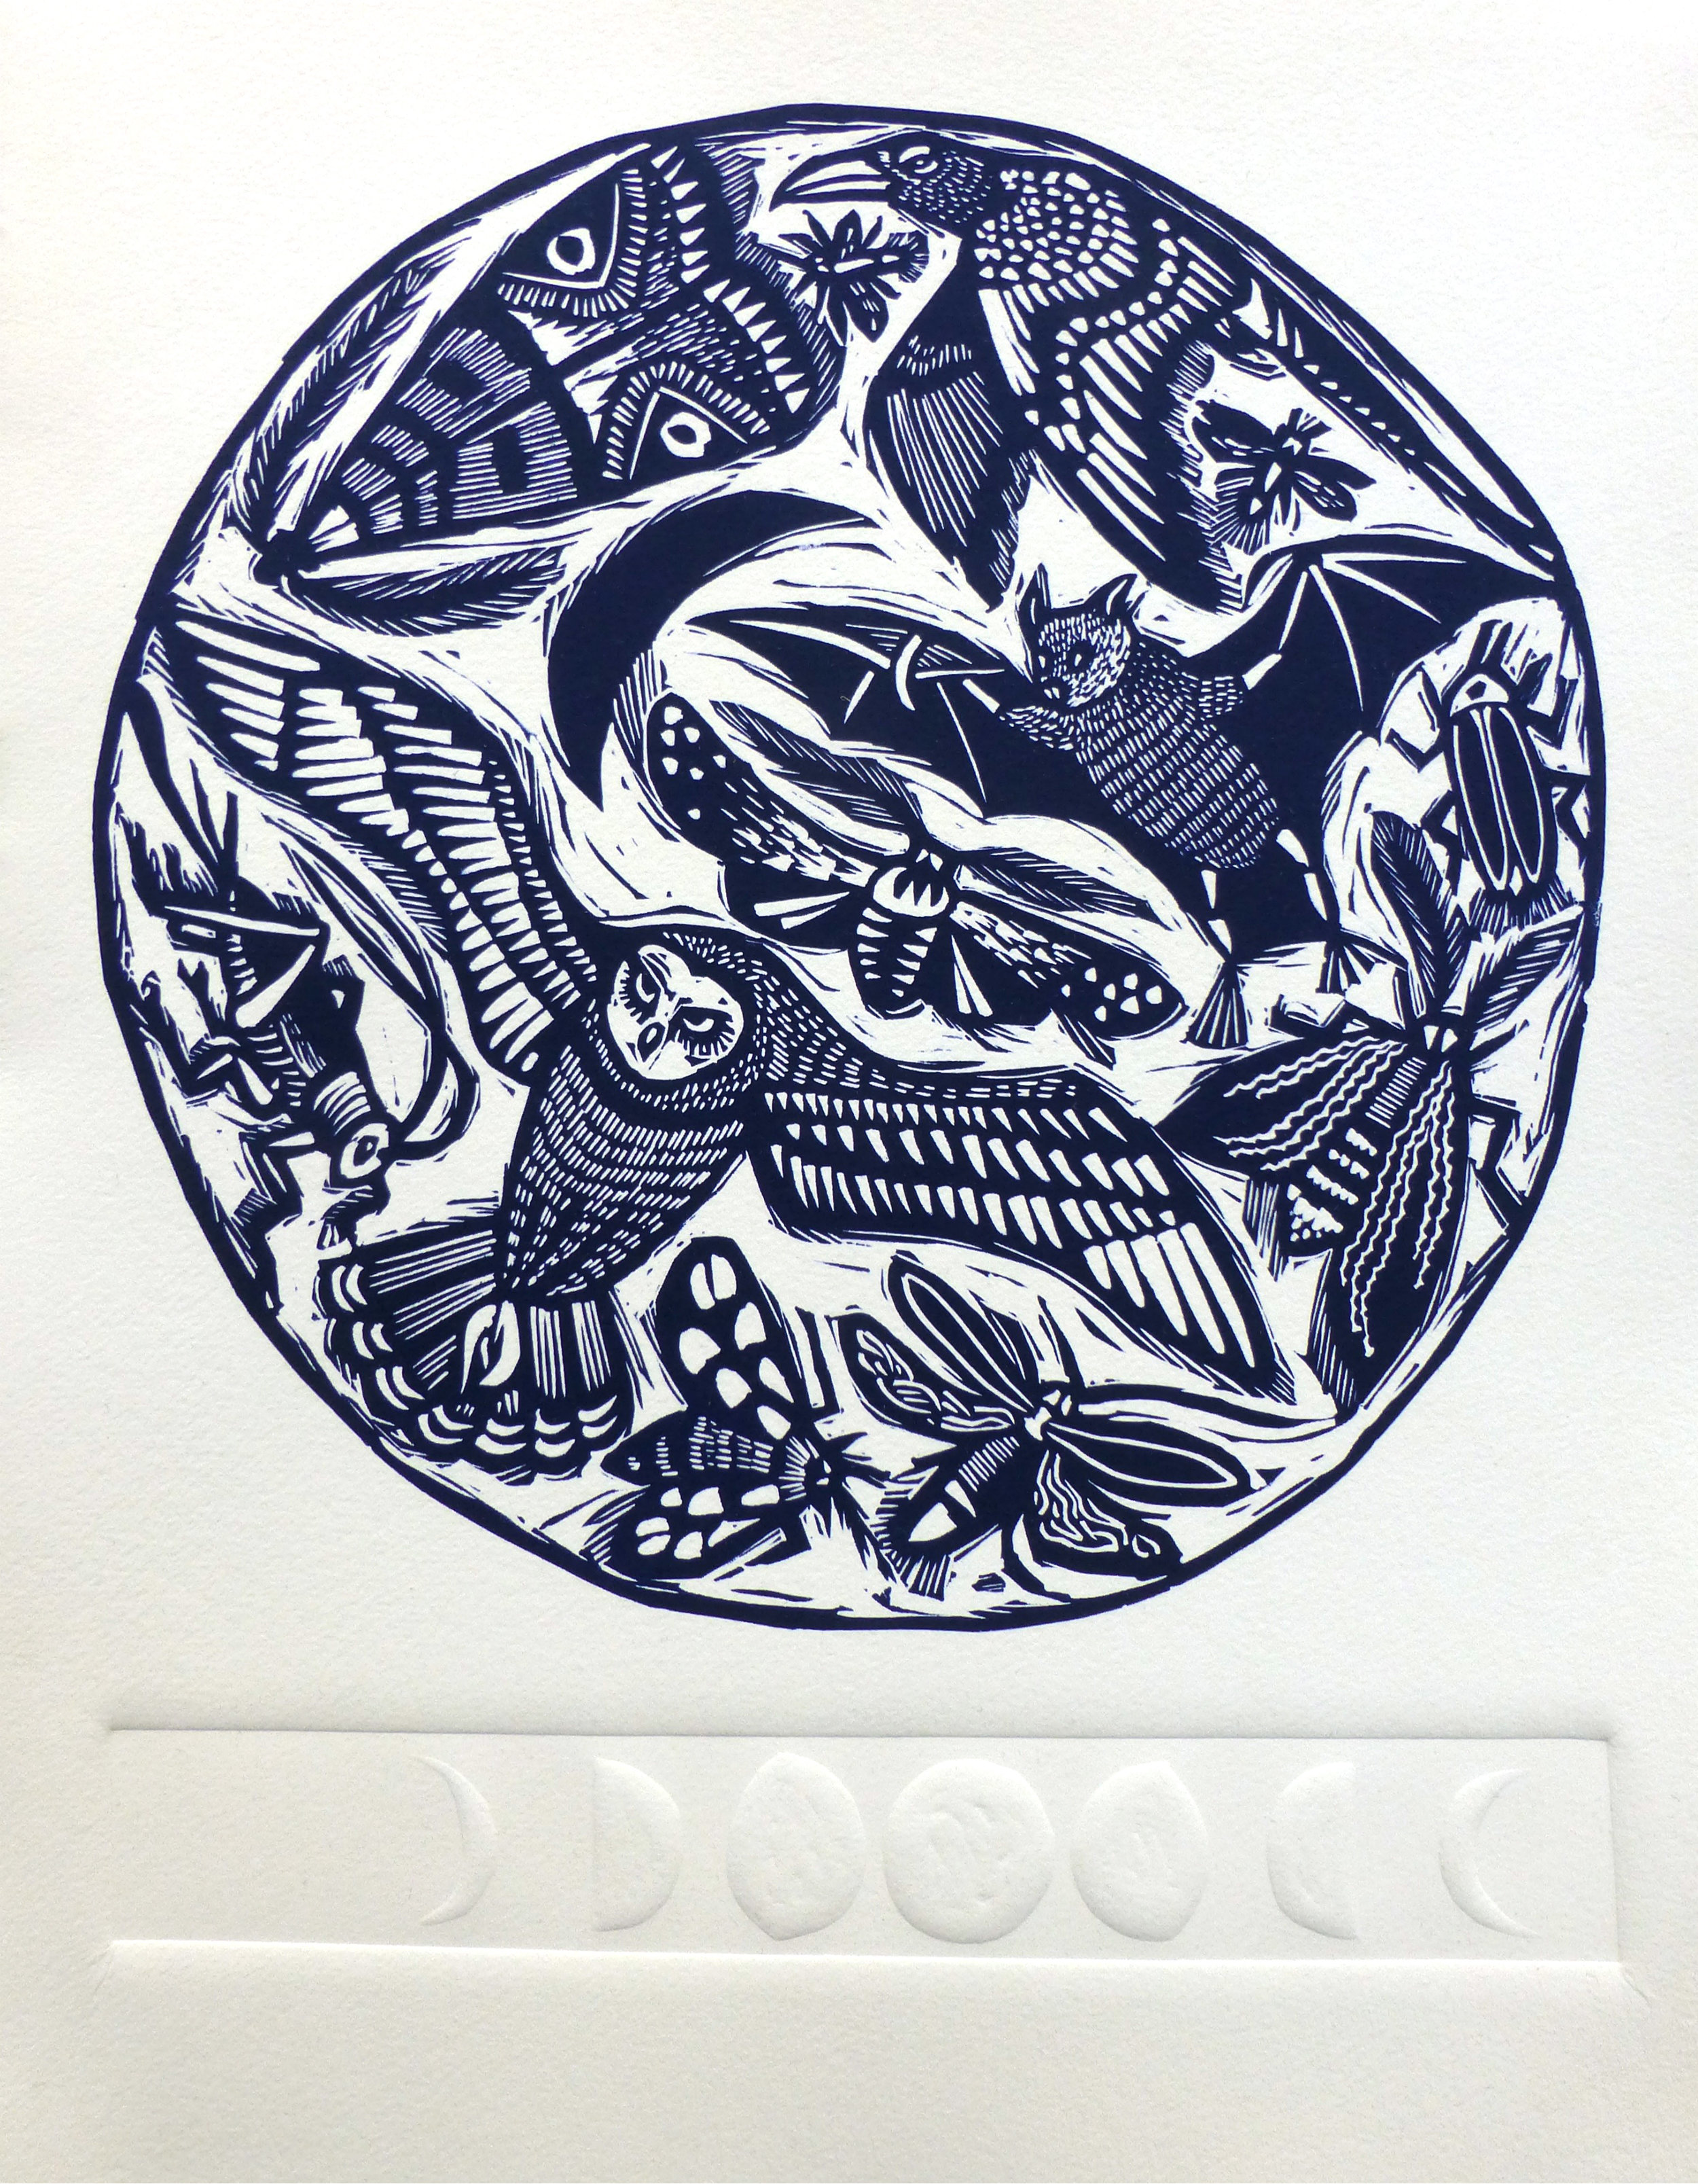 Creatures of the Night   Linocut with embossing, 2017  Edition of 20  Paper size: 35 cm x 28 cm  $100